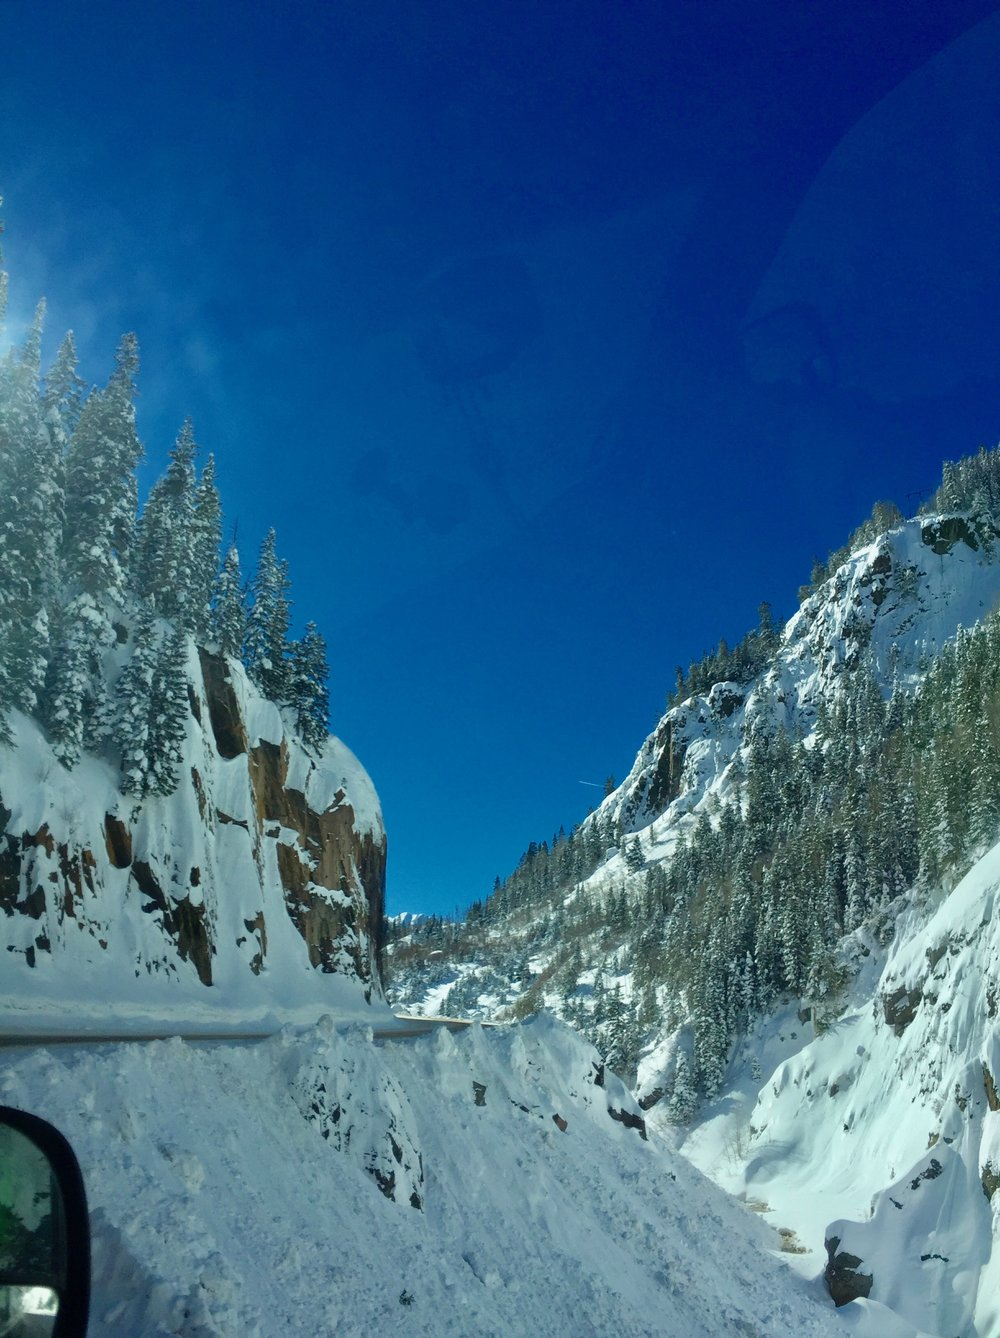 The Million Dollar Highway. No guardrails!